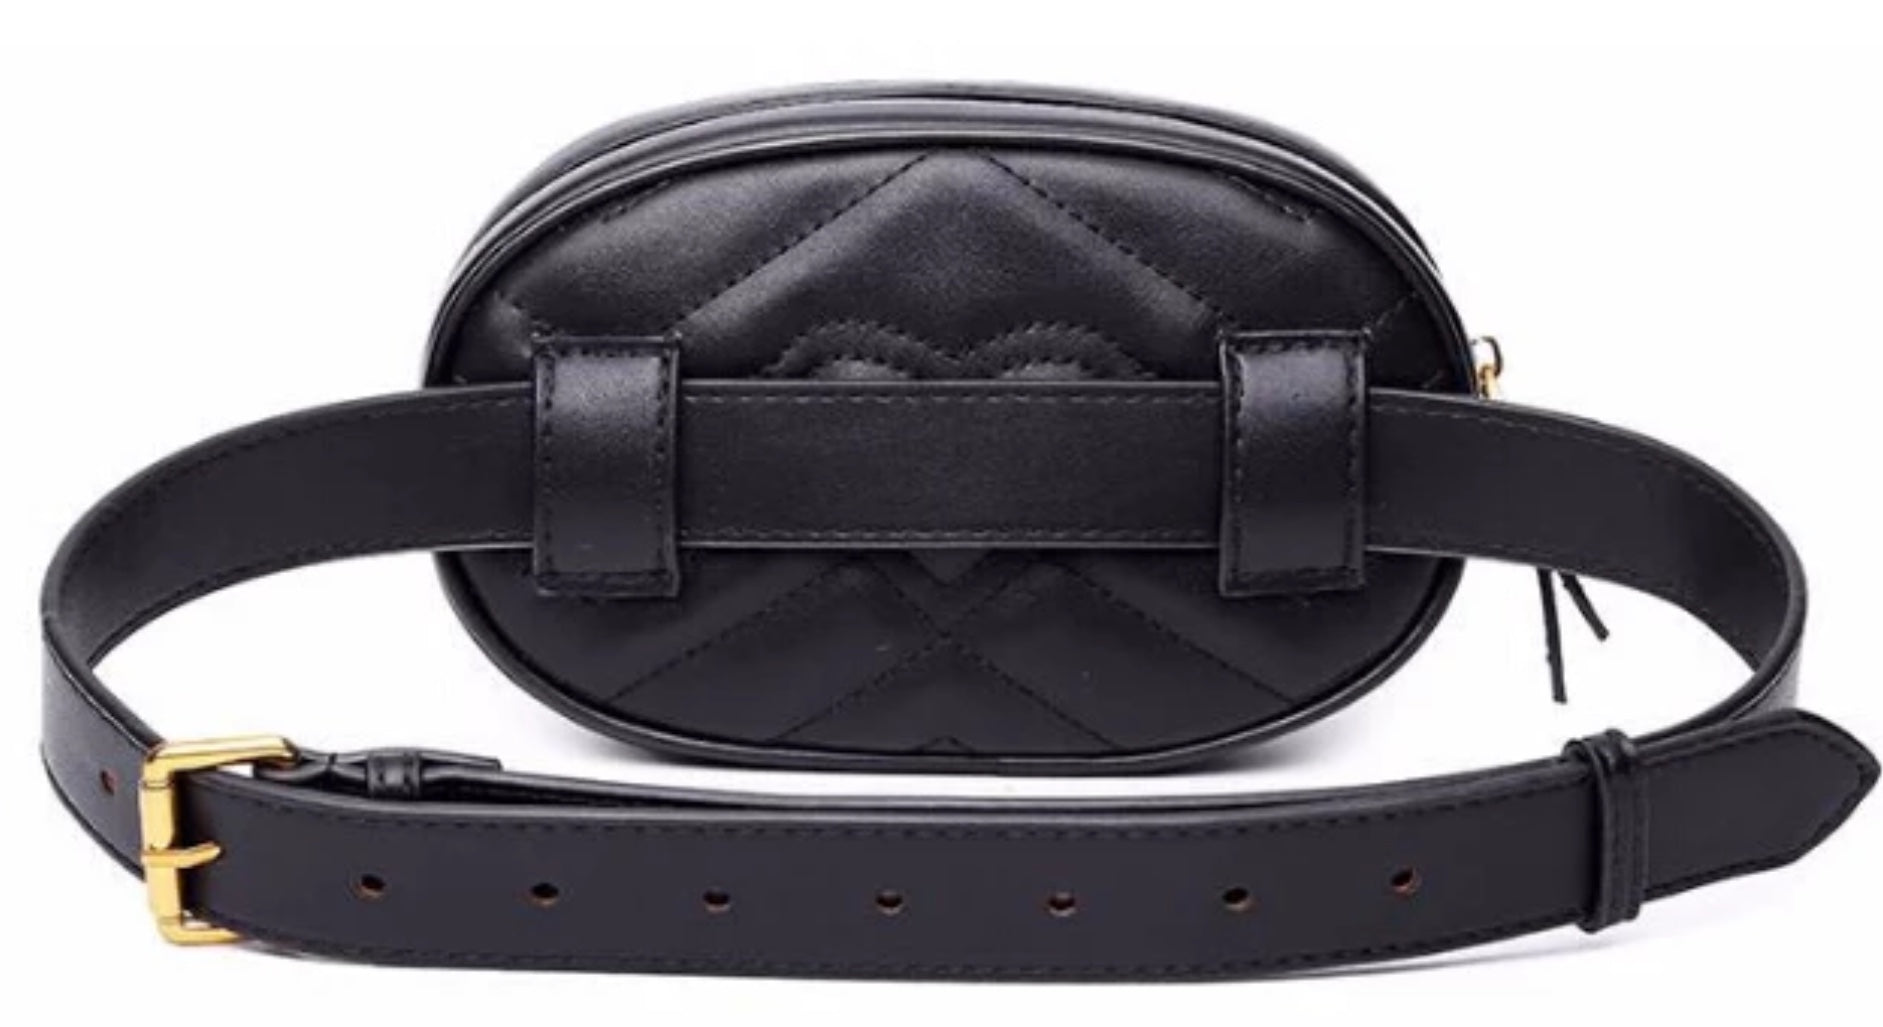 2-Way Fanny Pack (Black)